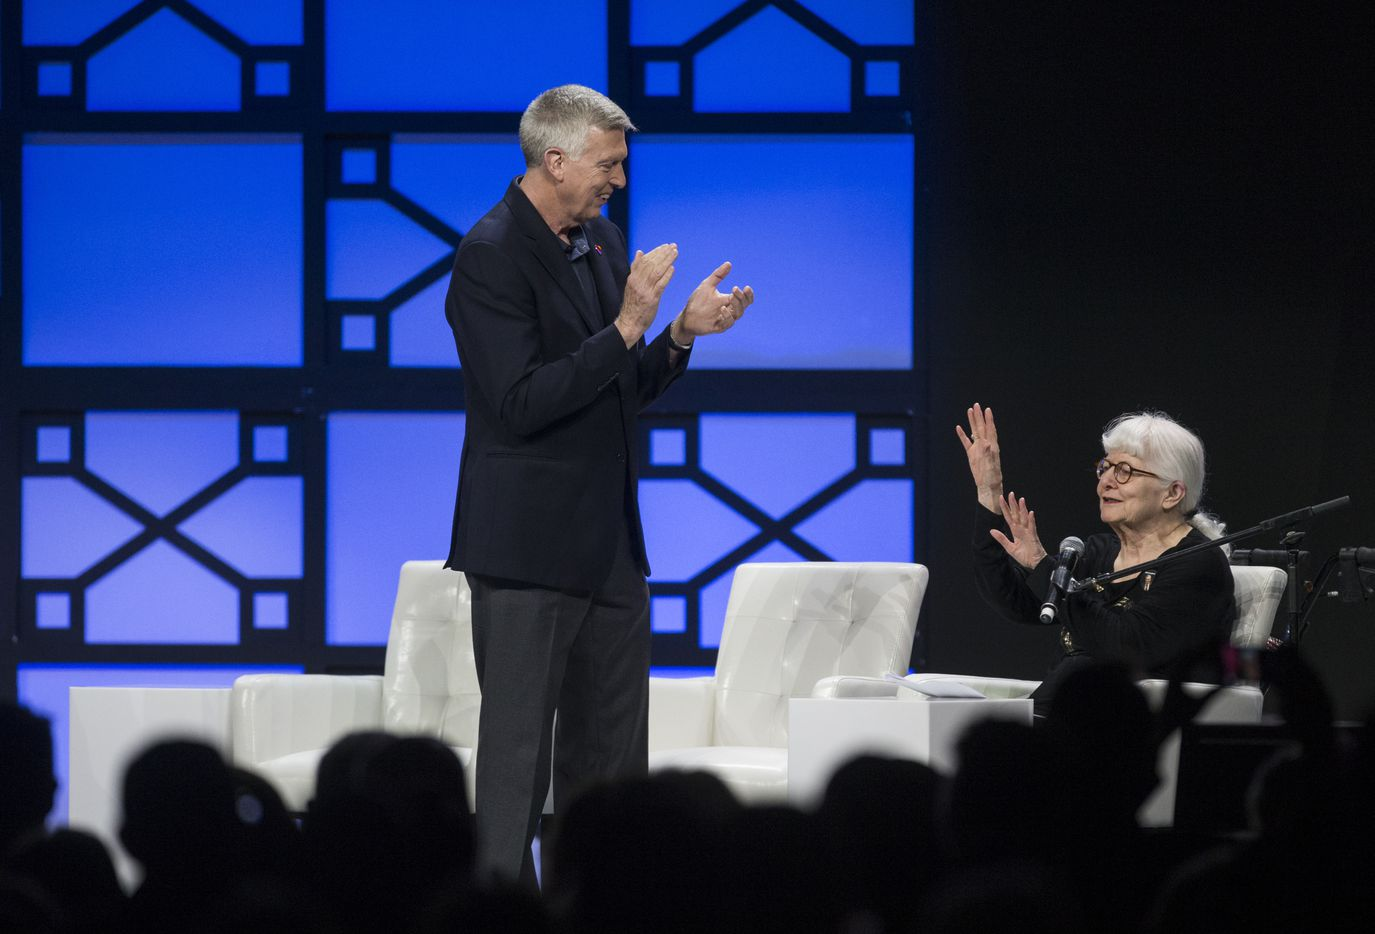 Southwest Airlines president emeritus Colleen Barrett, right, attempts to calm an applauding crowd as vice president of the board Ron Ricks claps during the celebration of life event for Southwest Airlines co-founder Herb Kelleher.